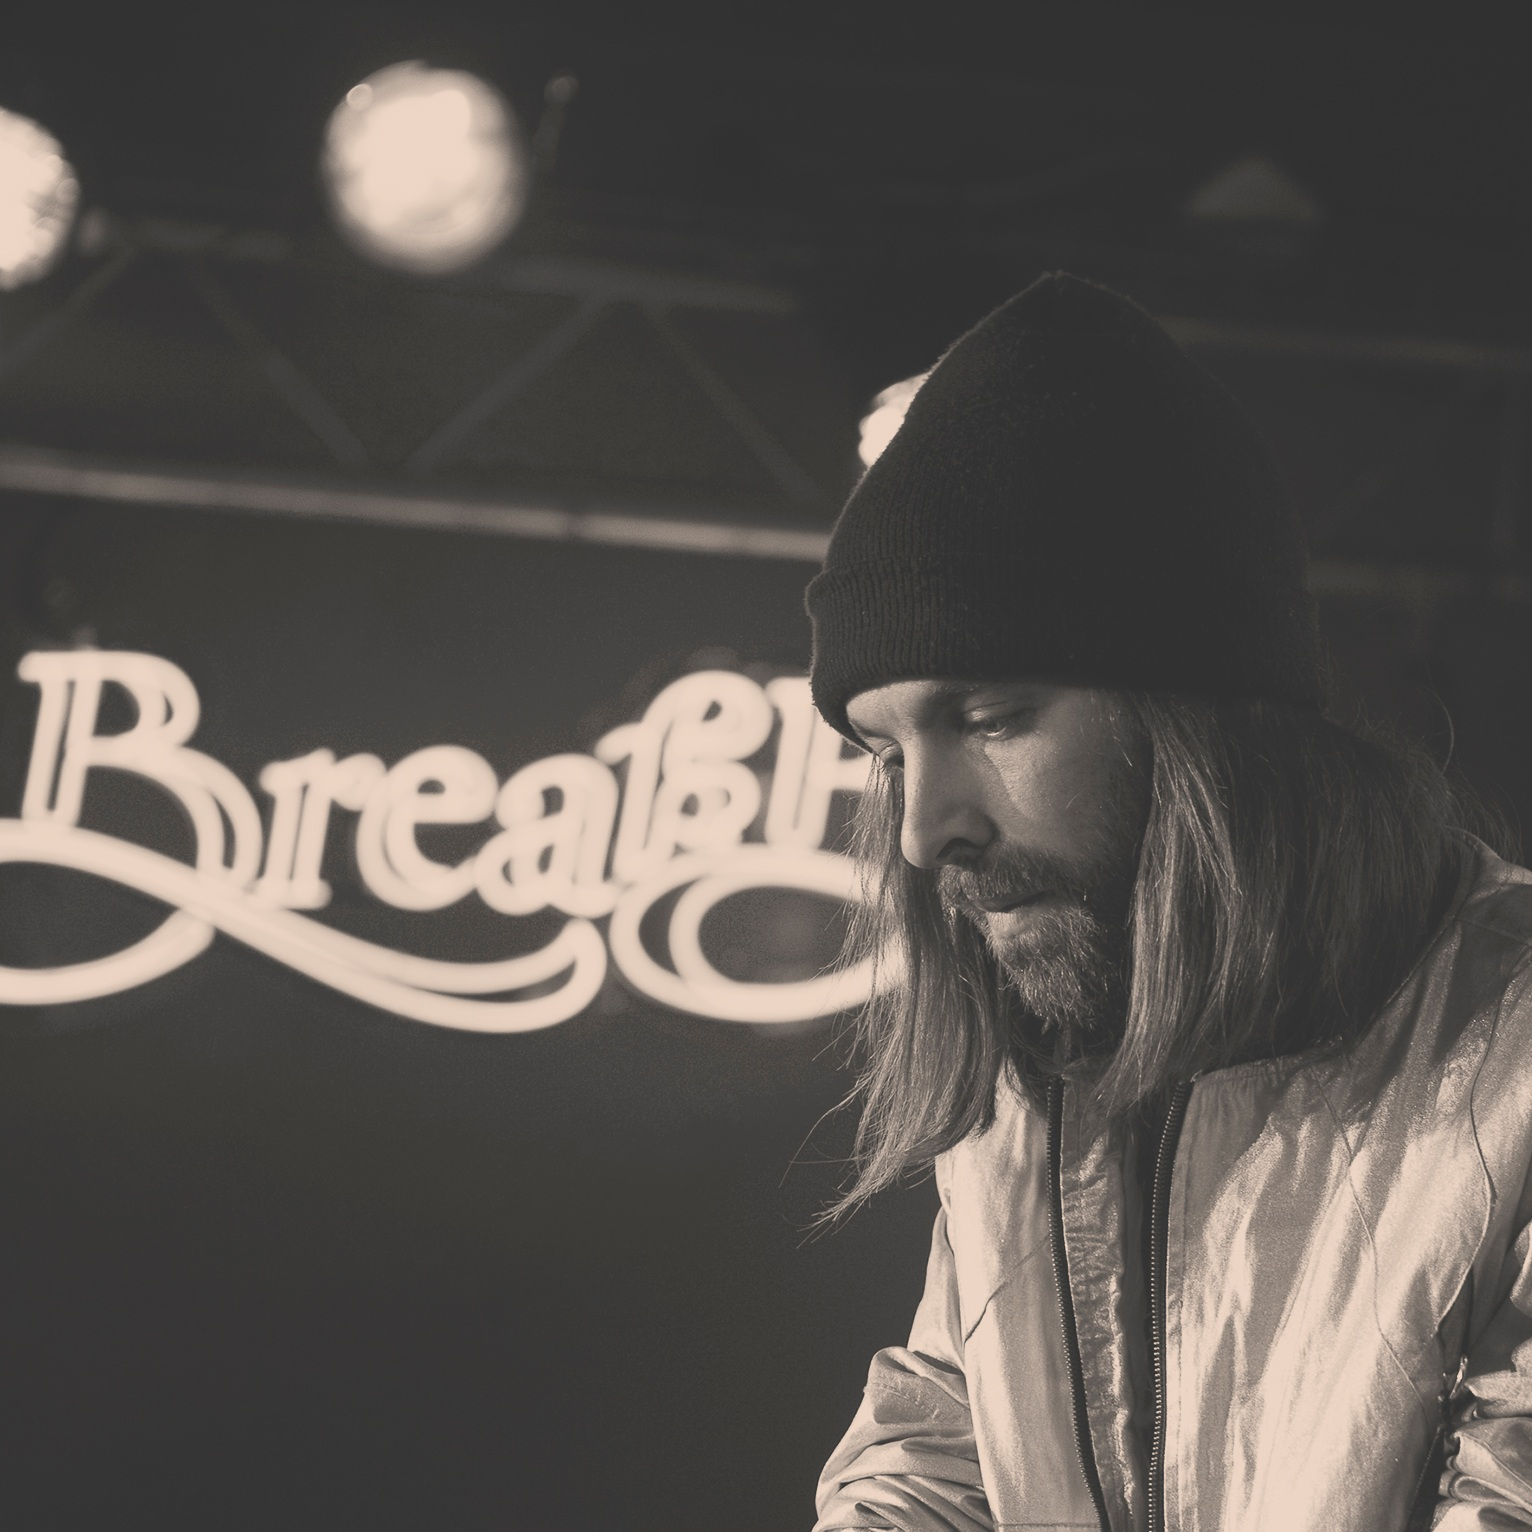 Breakbot - After the Baby I'm Yours EP and a few other similar projects, Breakbot released his debut album in 2012 on Ed Banger. Since then the heavy hitting producer has been playing across the world. Collective Minds brought the Ed Banger powerhouse to Hong Kong and Singapore.